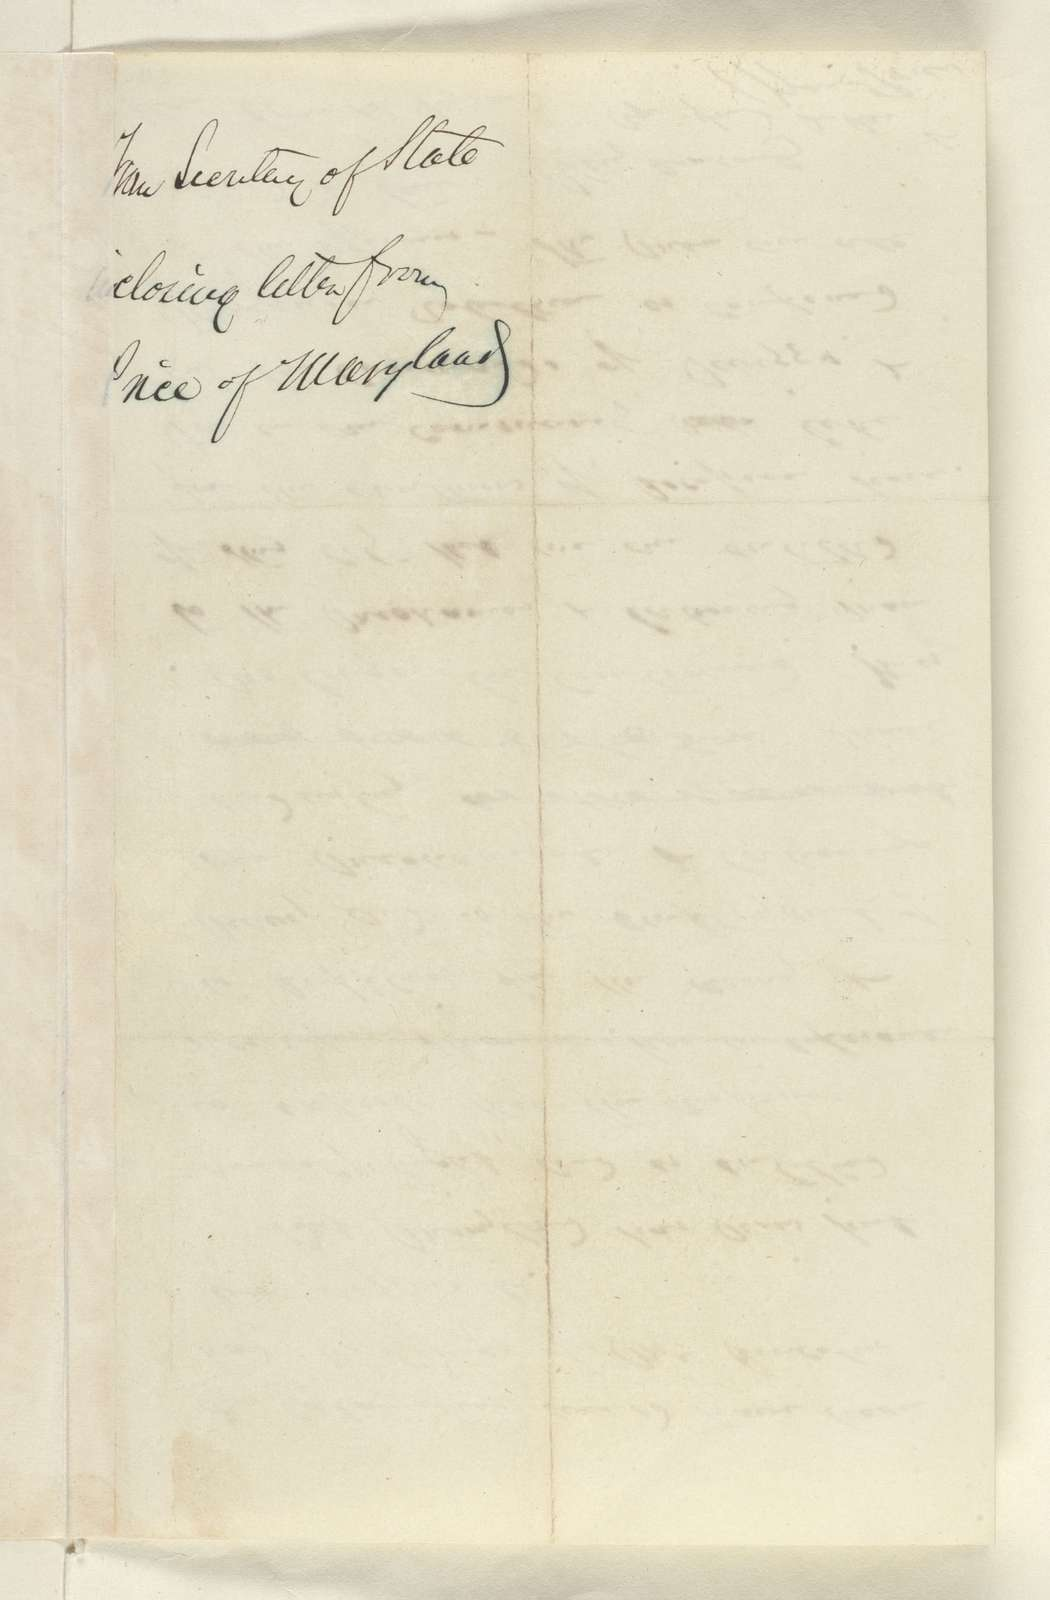 Abraham Lincoln papers: Series 1. General Correspondence. 1833-1916: William Price to William H. Seward, Friday, November 08, 1861 (Situation in Maryland)